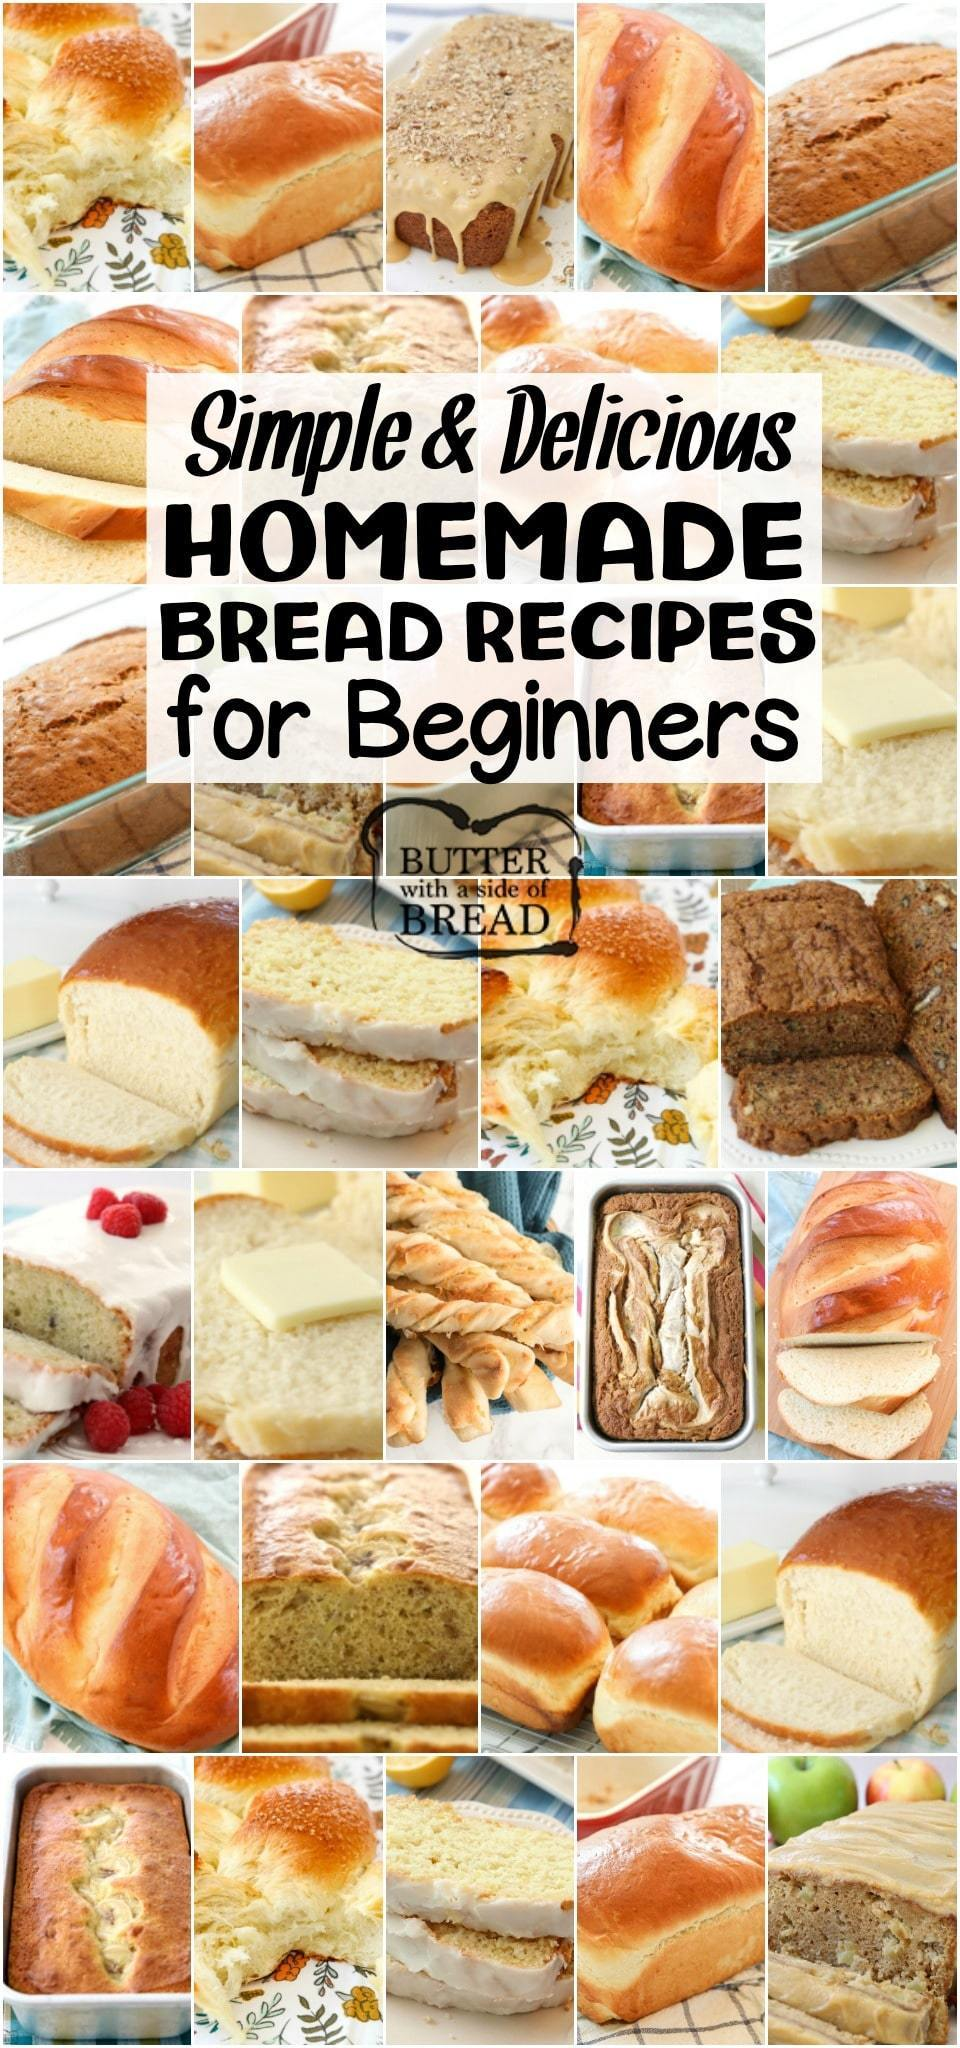 Easy Homemade Bread Recipes for Beginners~ from sweet to savory, quick breads to yeast breads, you're going to love this bread! Most popular easy bread recipes we can't get enough of. If you want to make bread, START HERE!